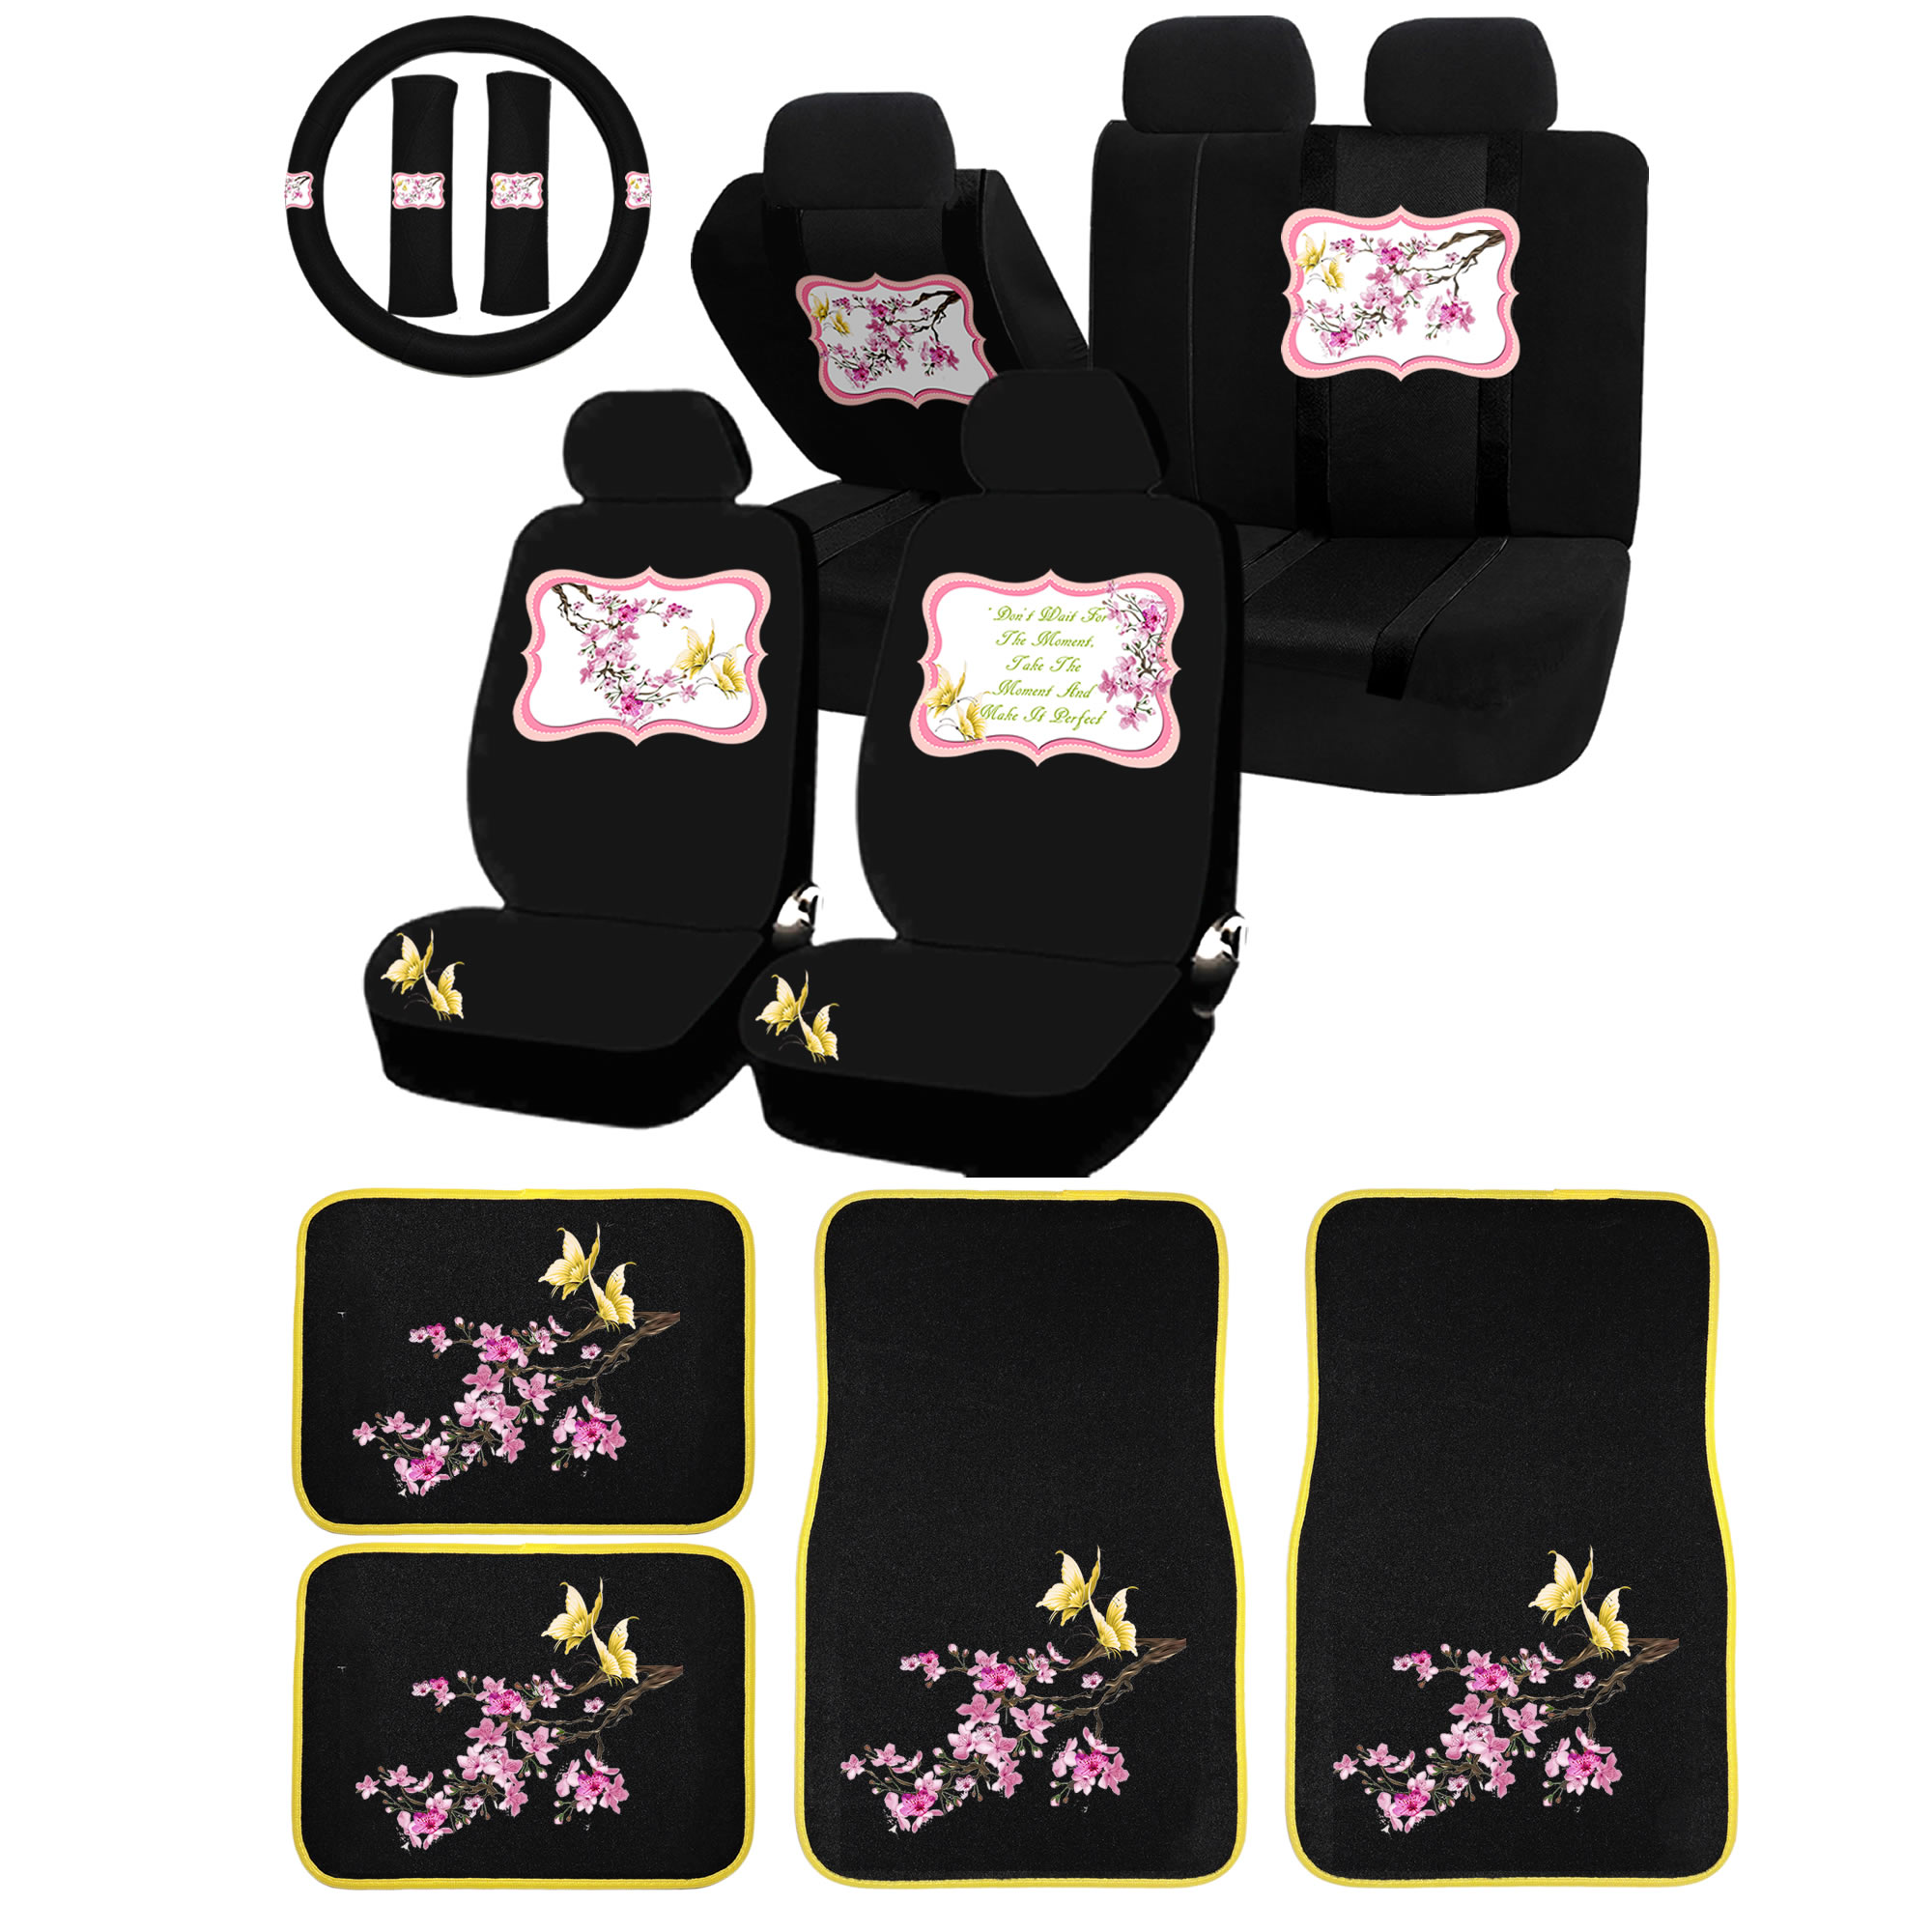 26PC Cherry Blossom Yellow Butterfly Universal Seat Covers & Carpet Floor Mats Set Car Truck SUV